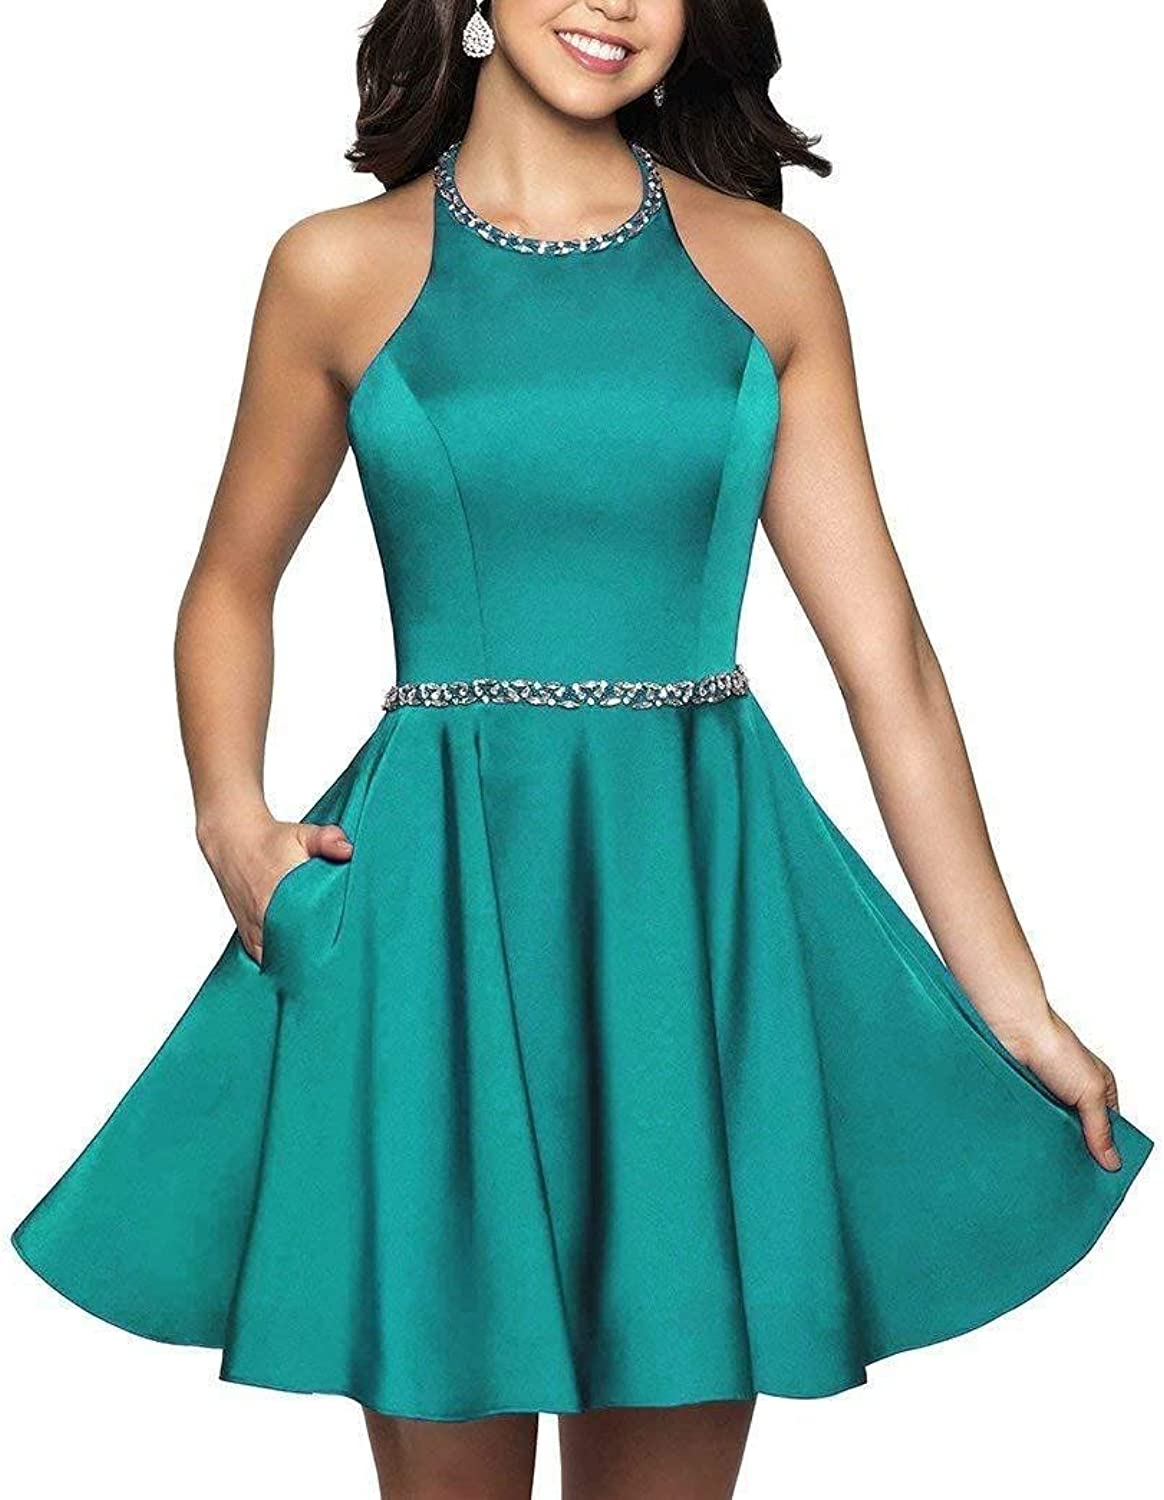 Ruisha Women Halter Beaded Open Back Prom Homecoming Dresses Short Formal Party Graduation Dress RS0240